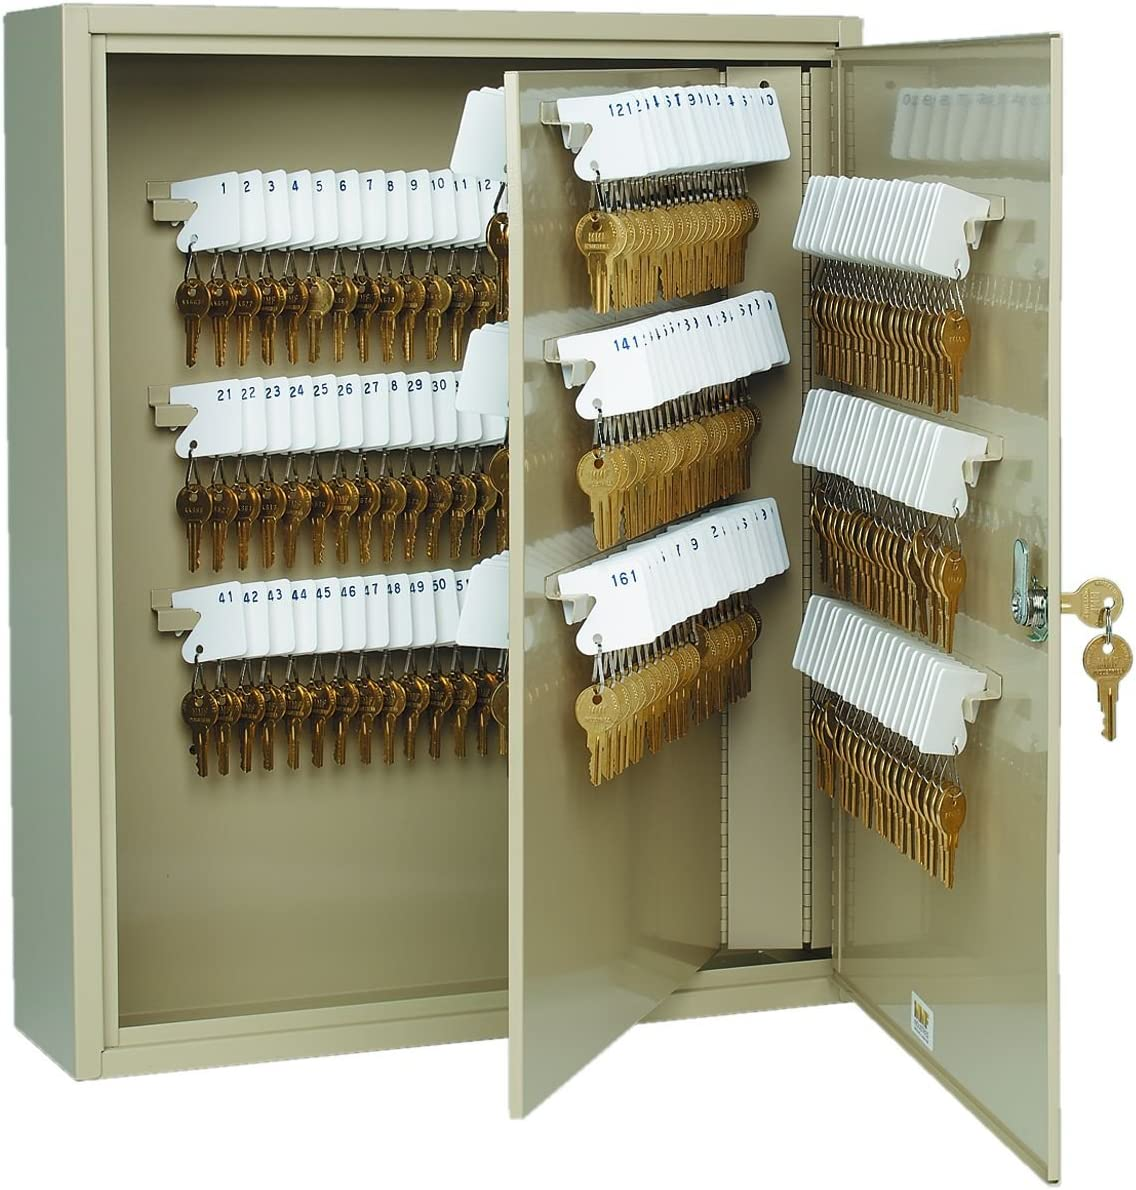 Mmf Industries Uni Tag 240 Key Cabinet 1 Each 201924003 Office Products Amazon Com